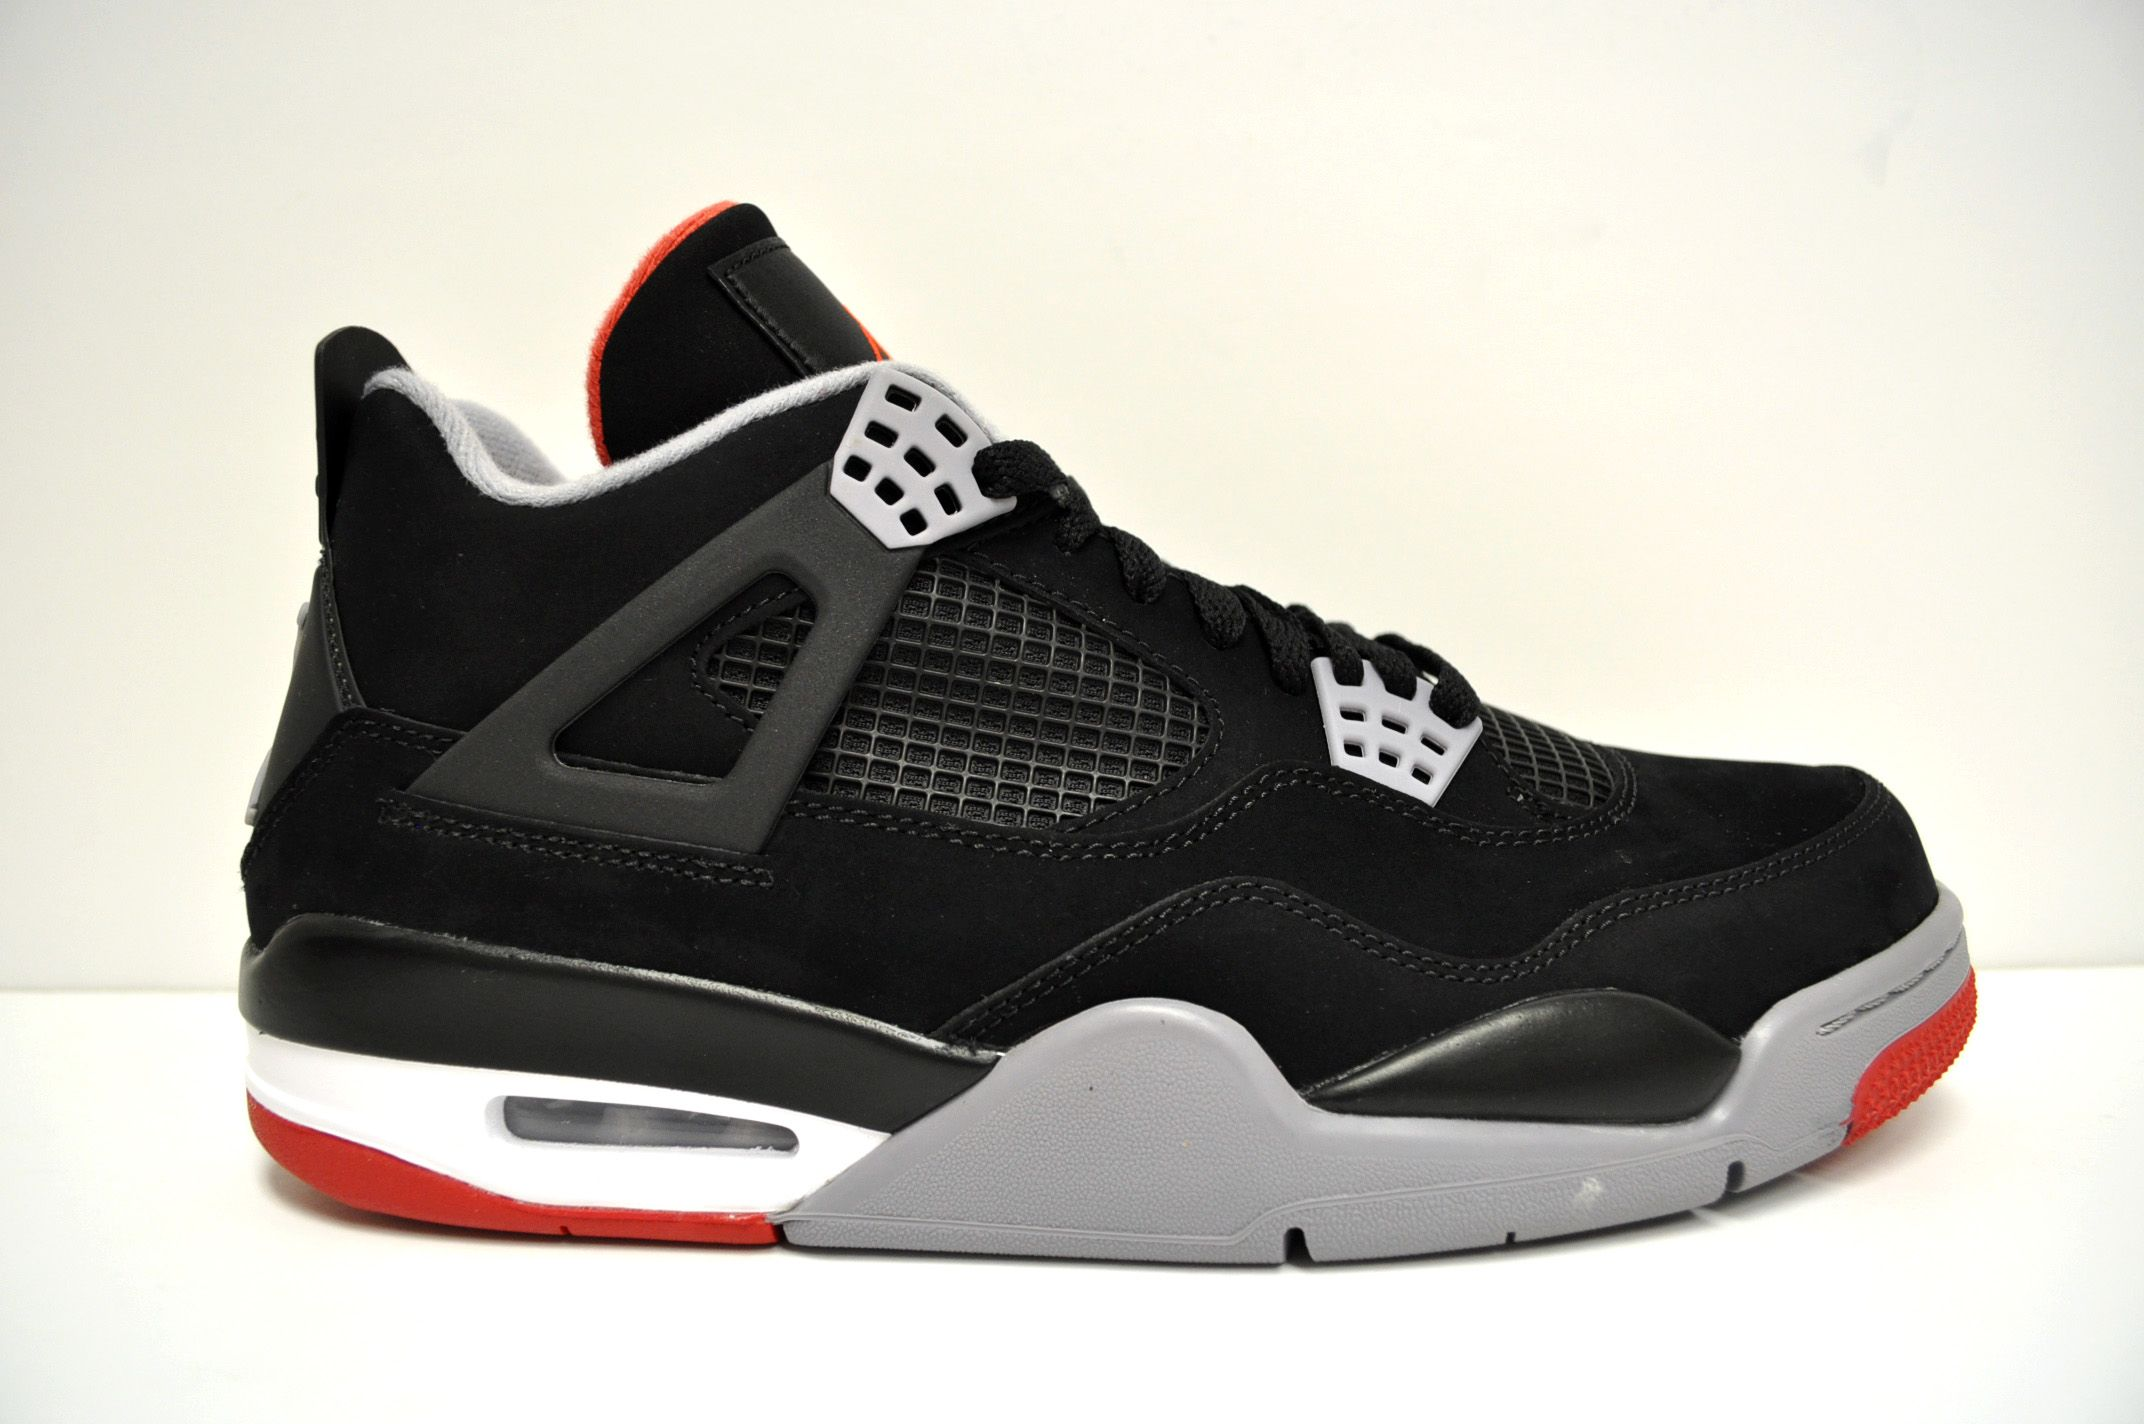 Jordan 4 Retro Bred Awaiting delivery, can't wait